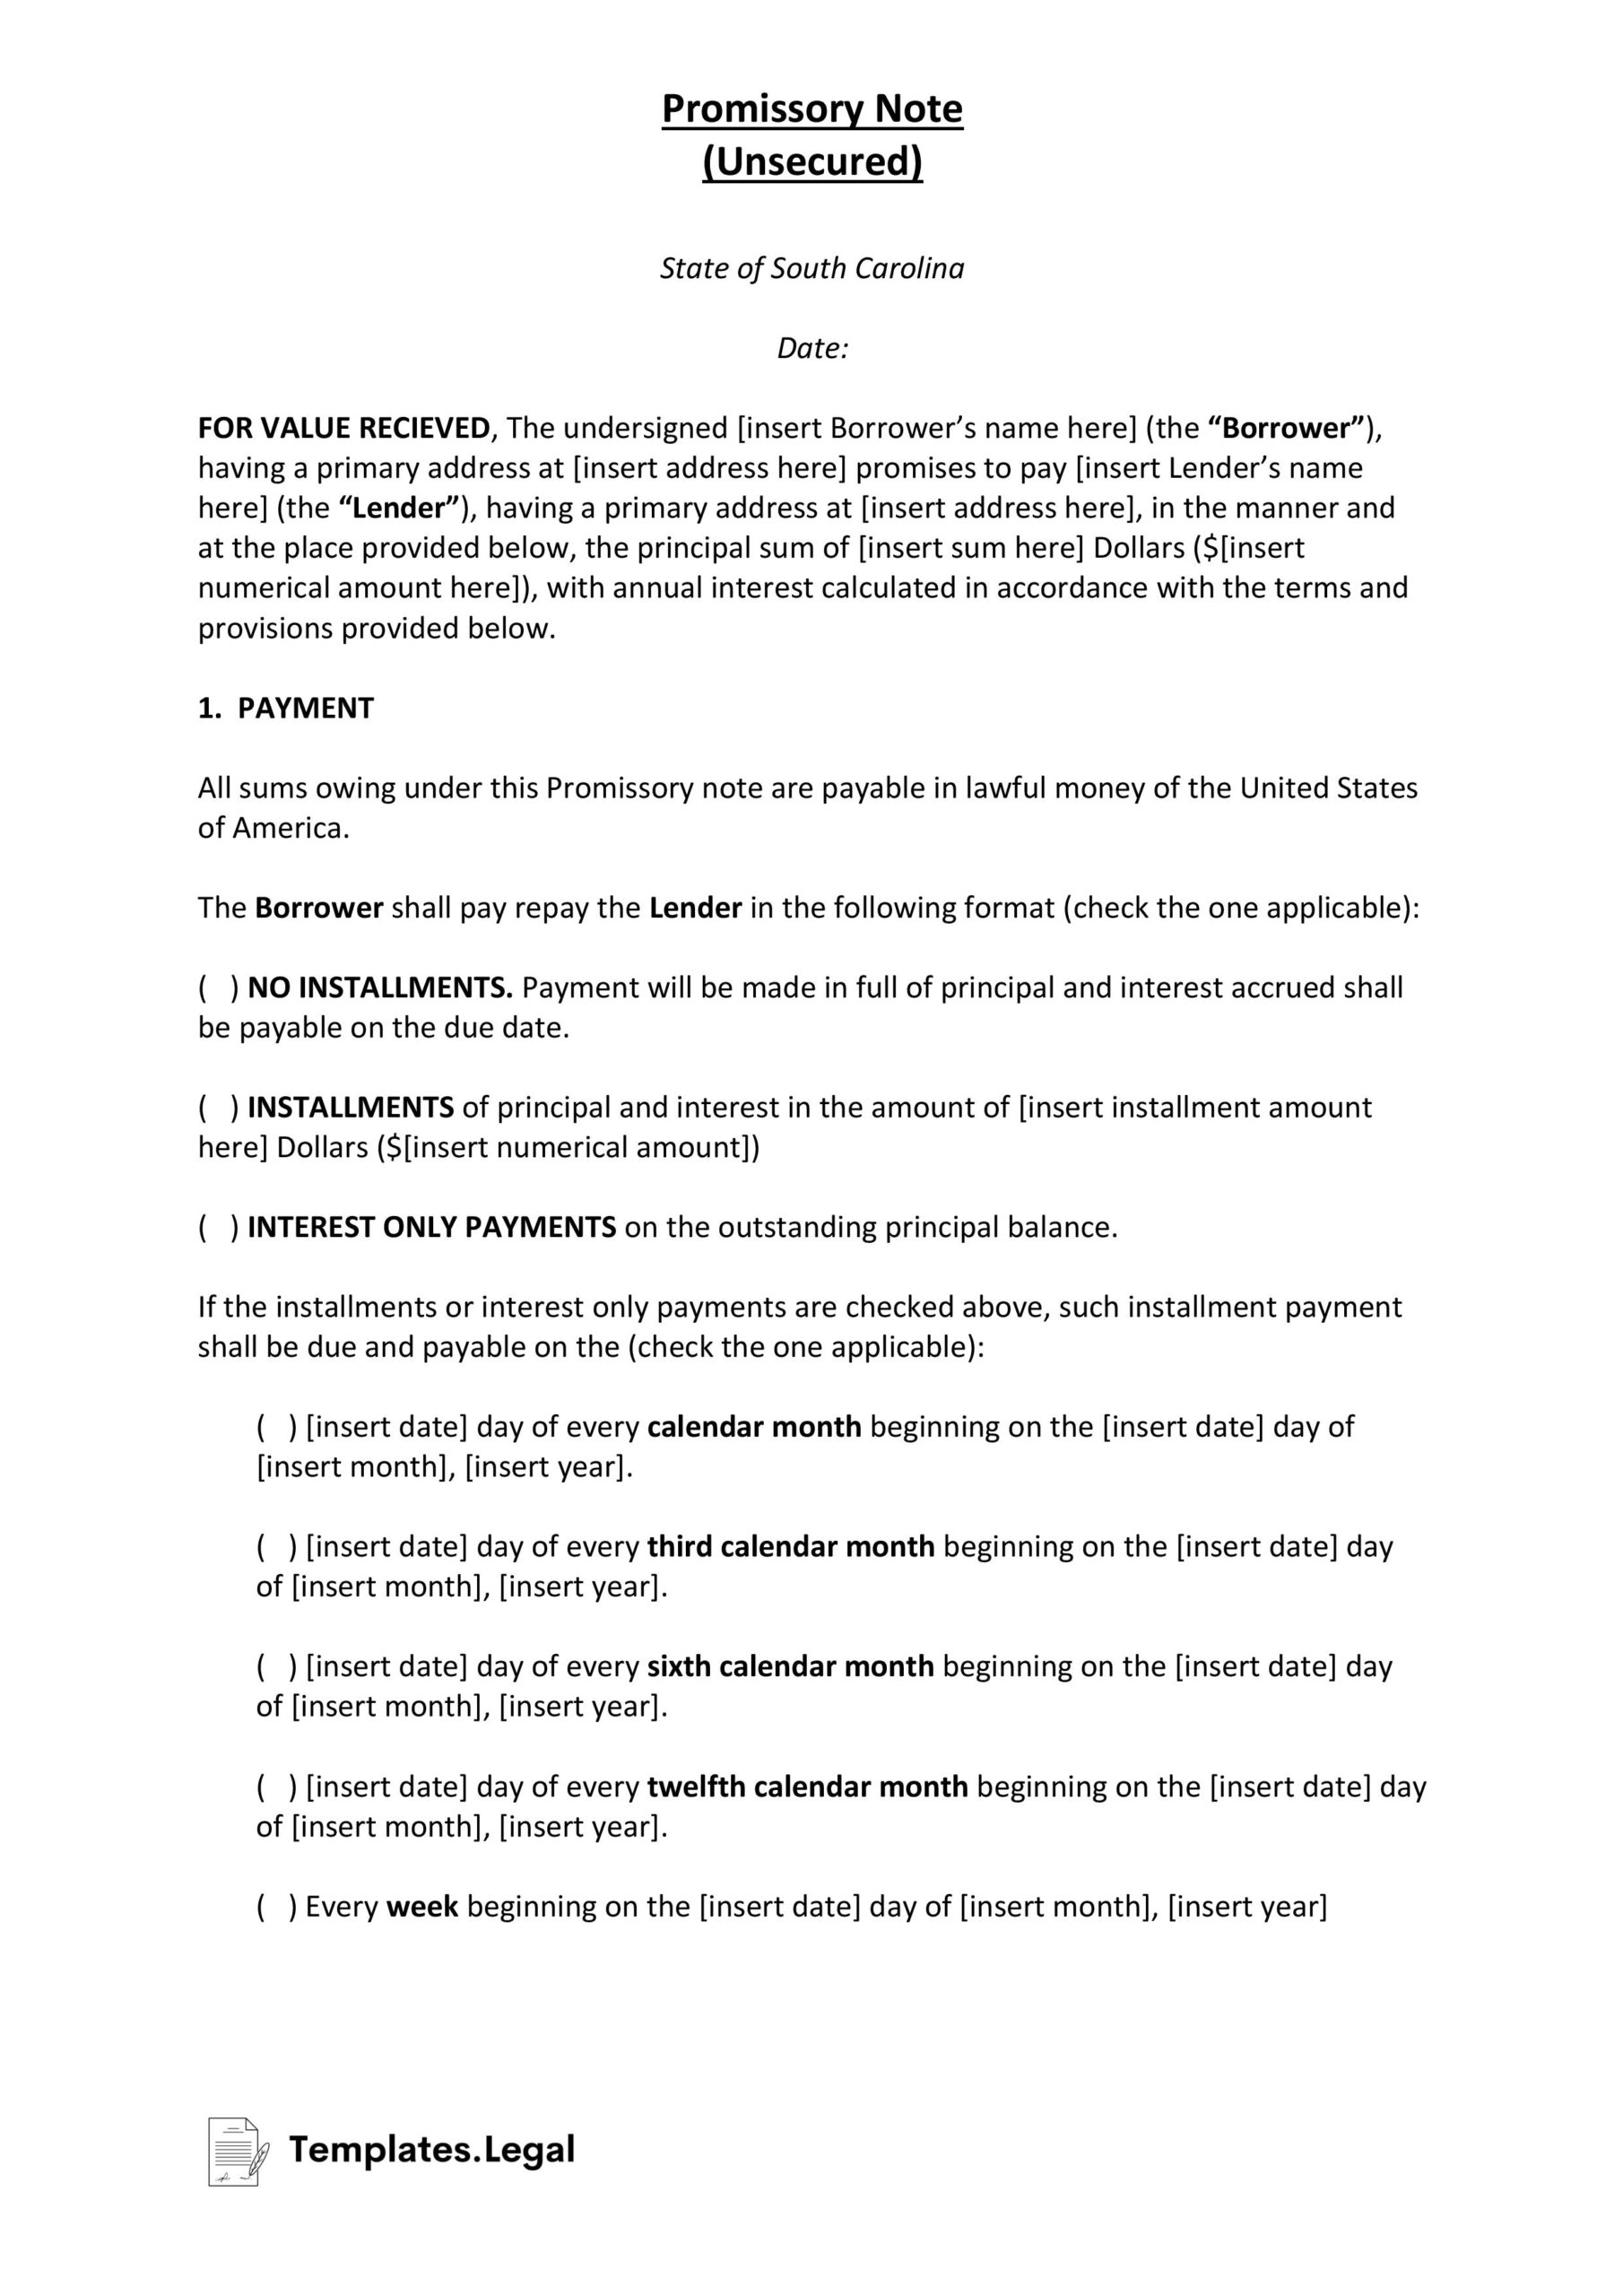 South Carolina Unsecured Promissory Note - Templates.Legal